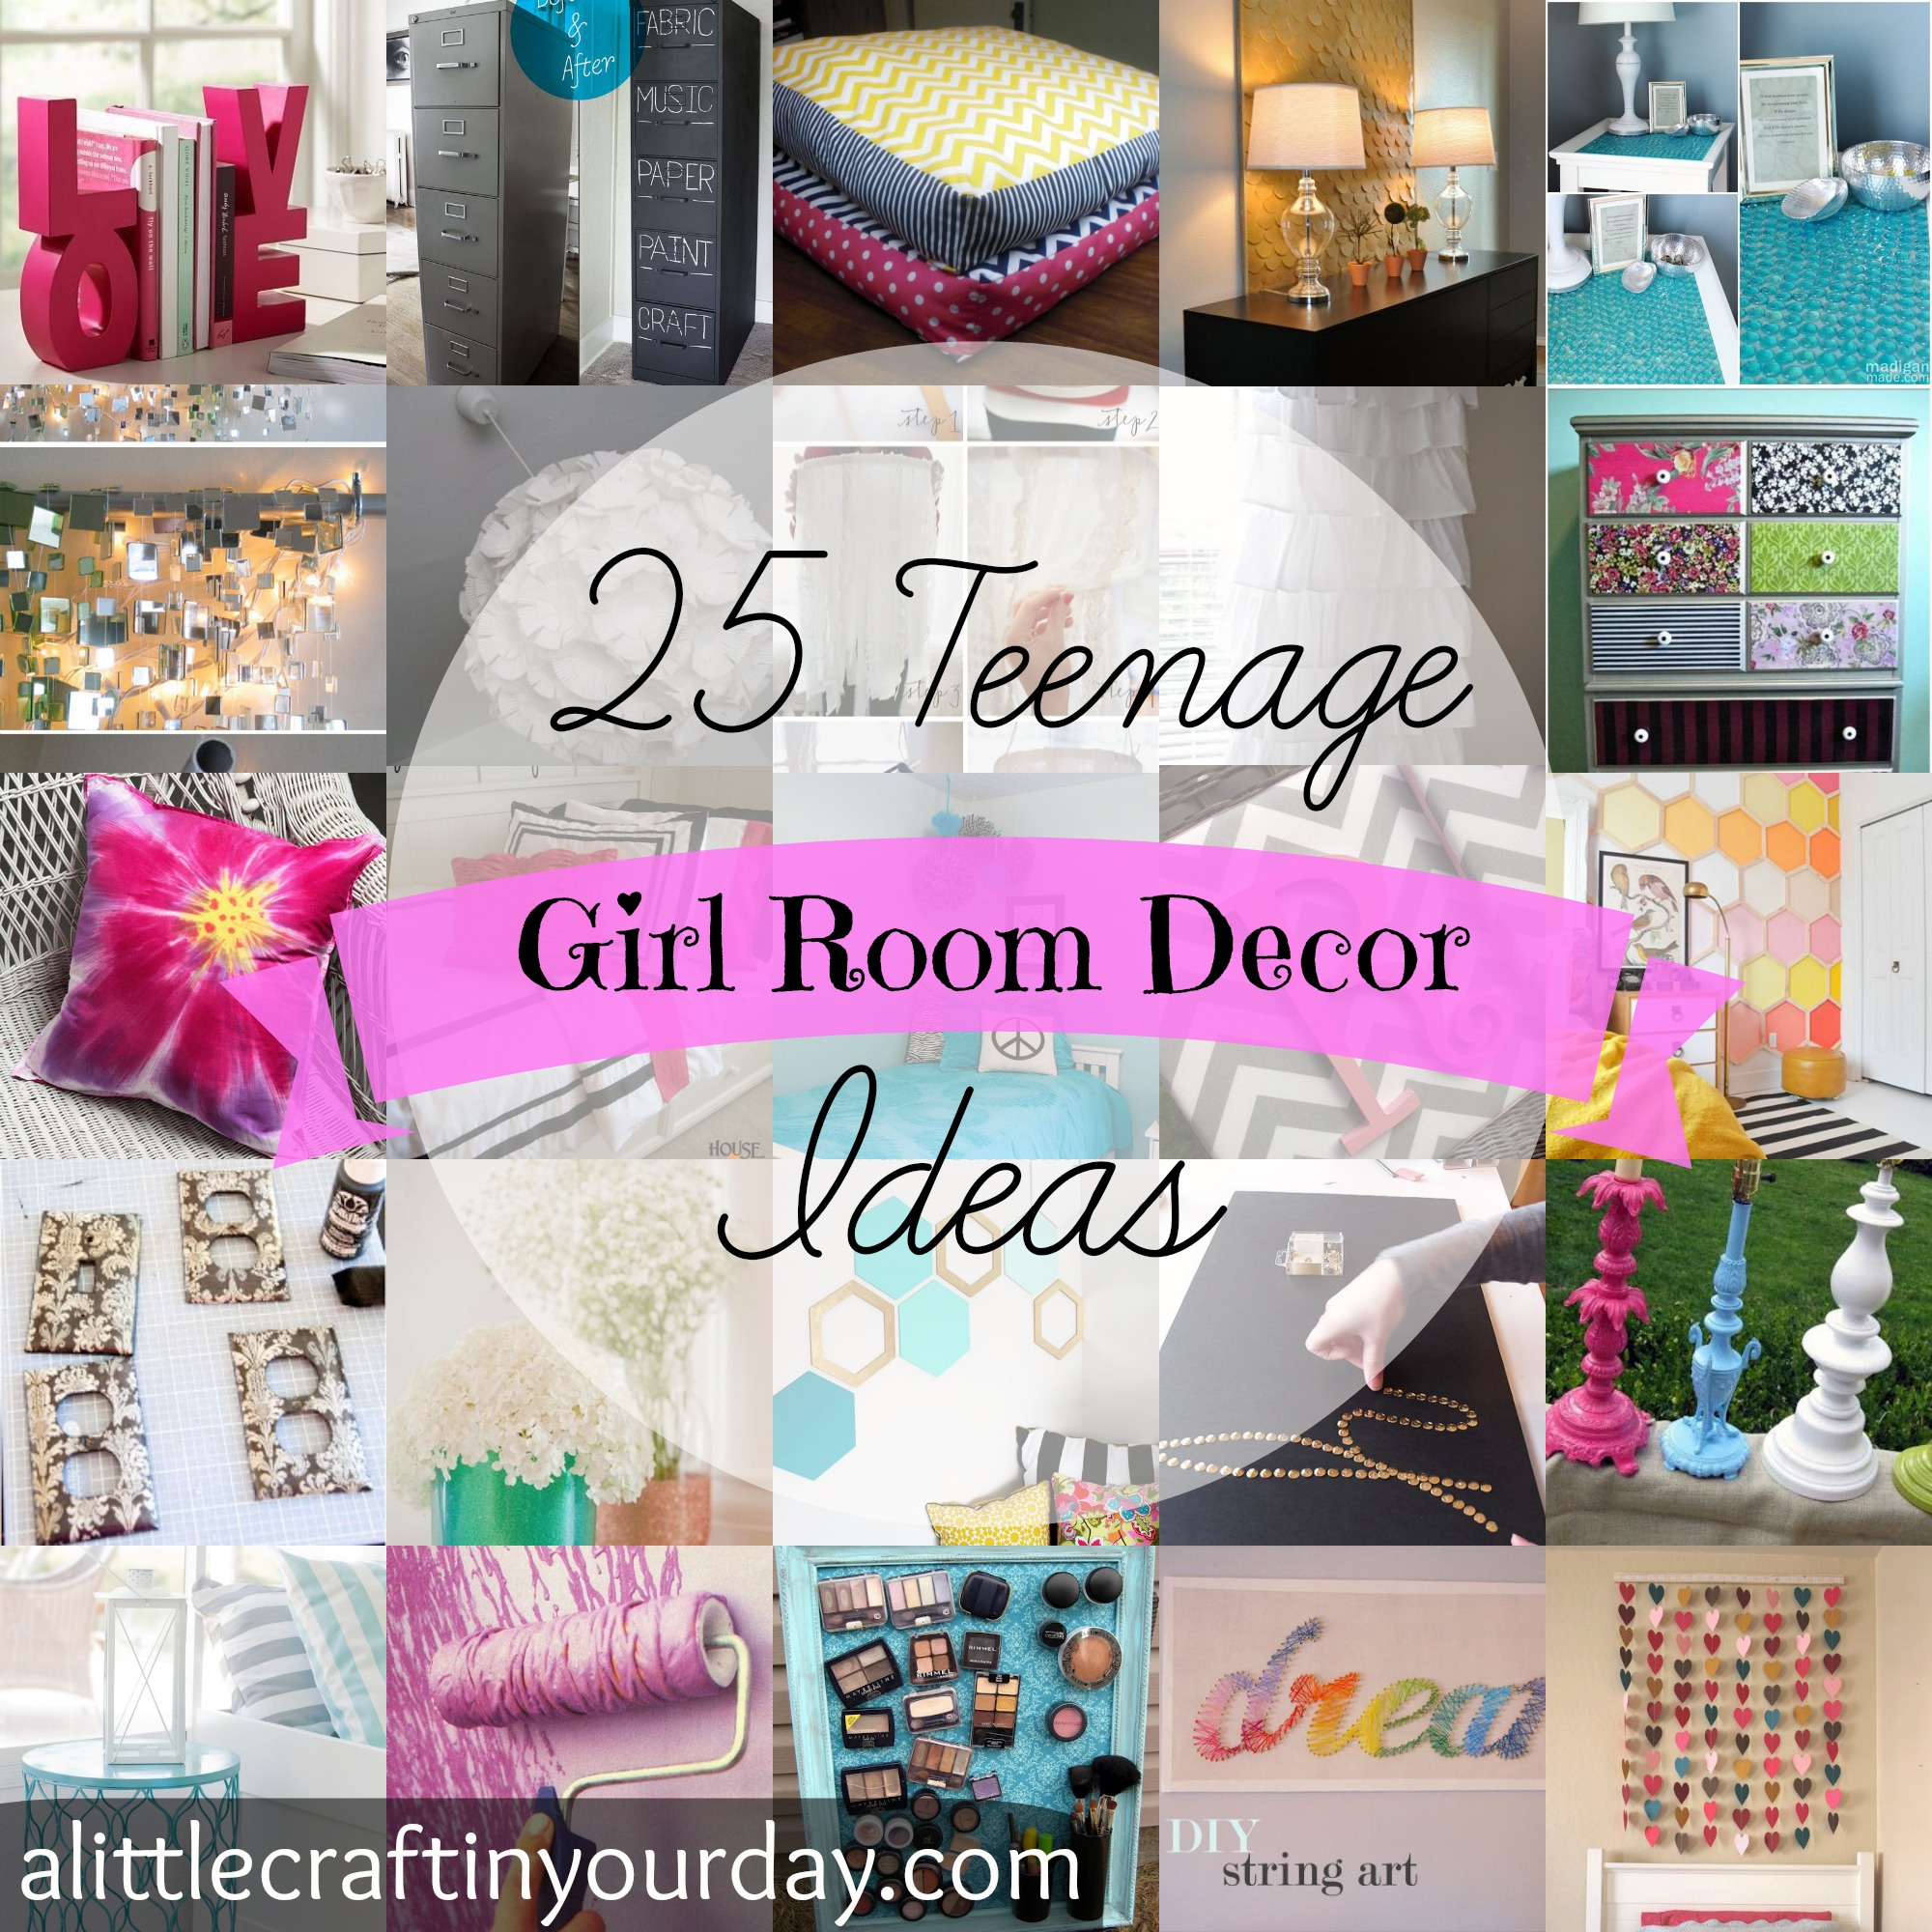 Pennsylvania man room decorating ideas for teens With Pride